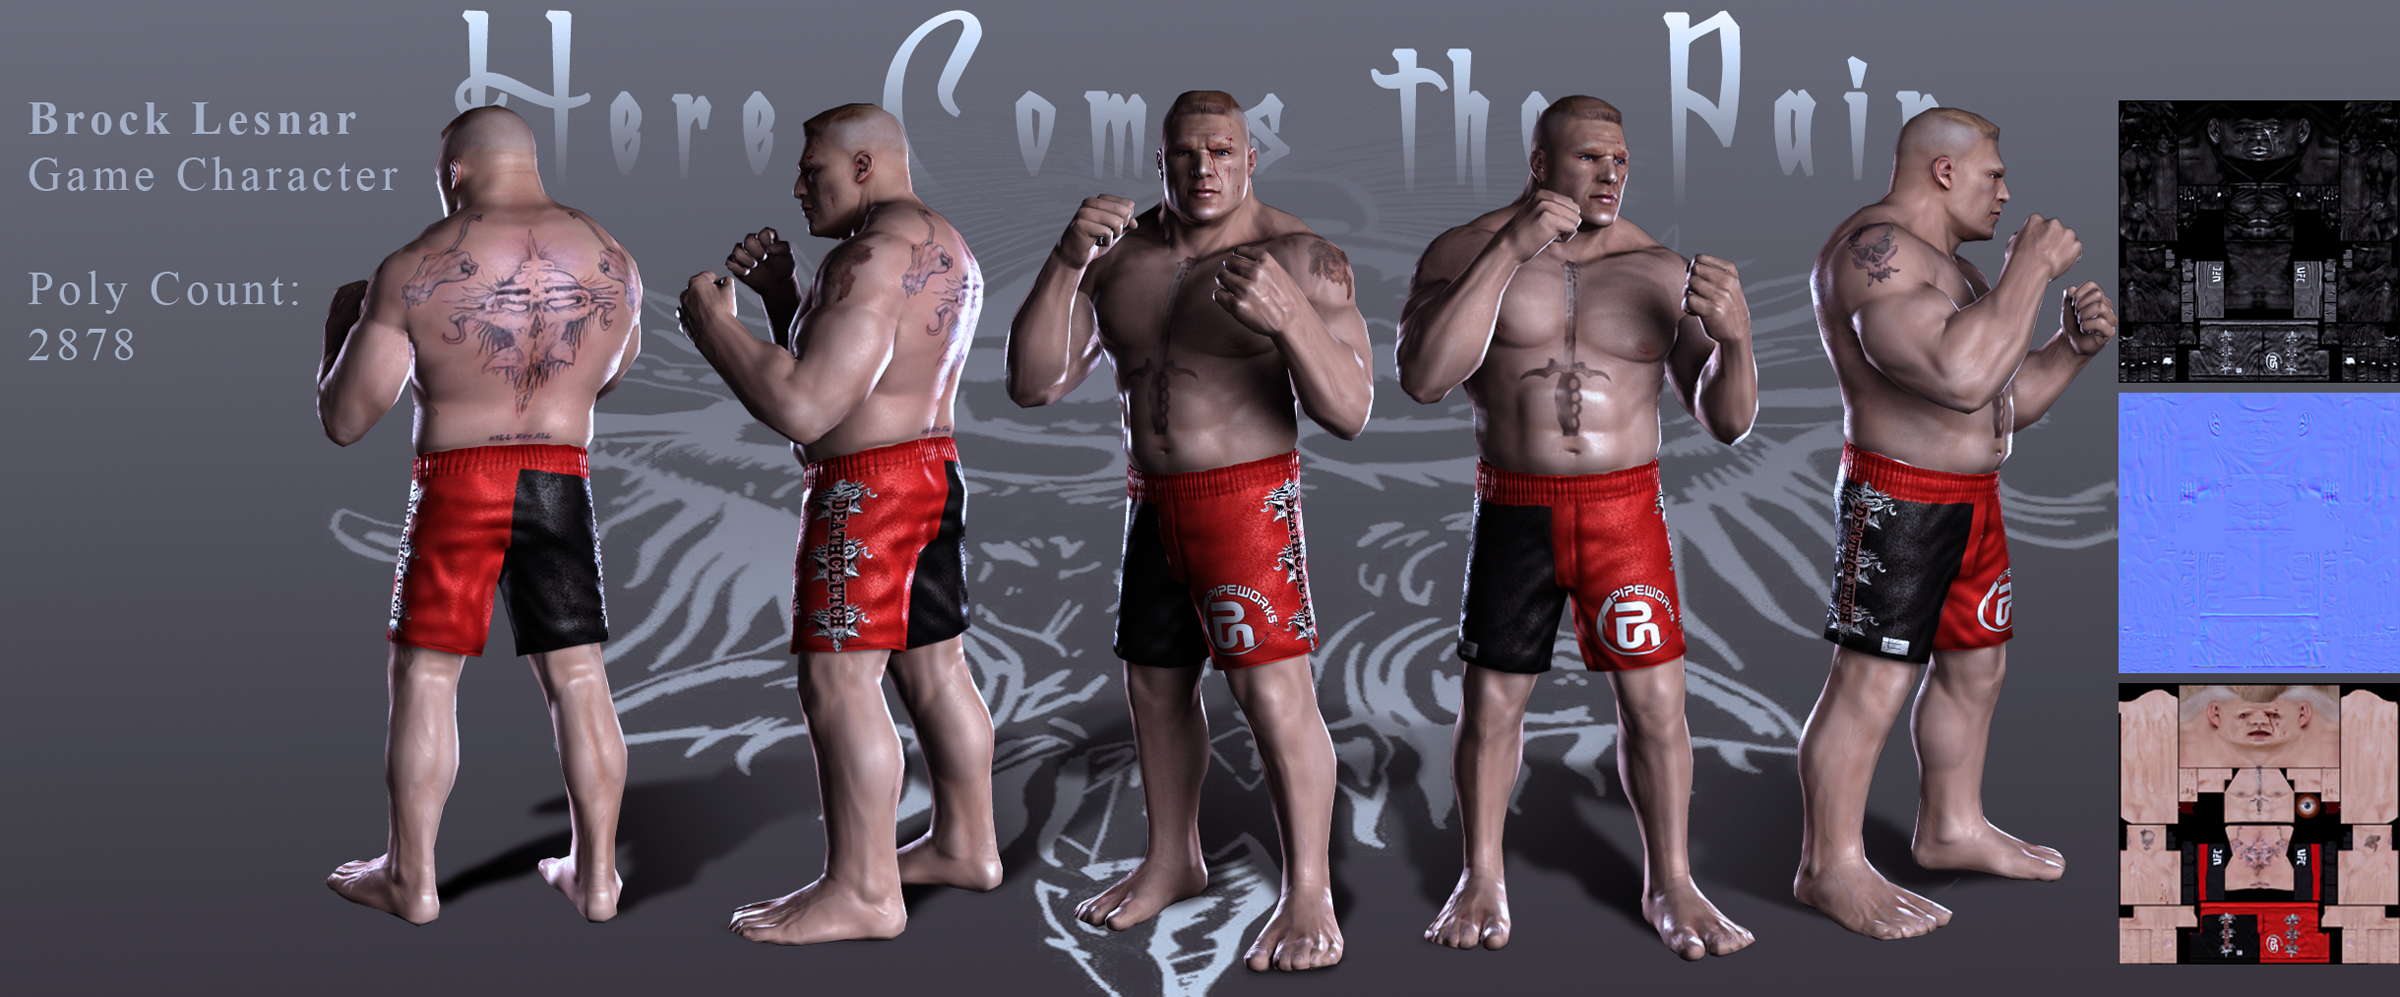 Brock Lesnar Game Model